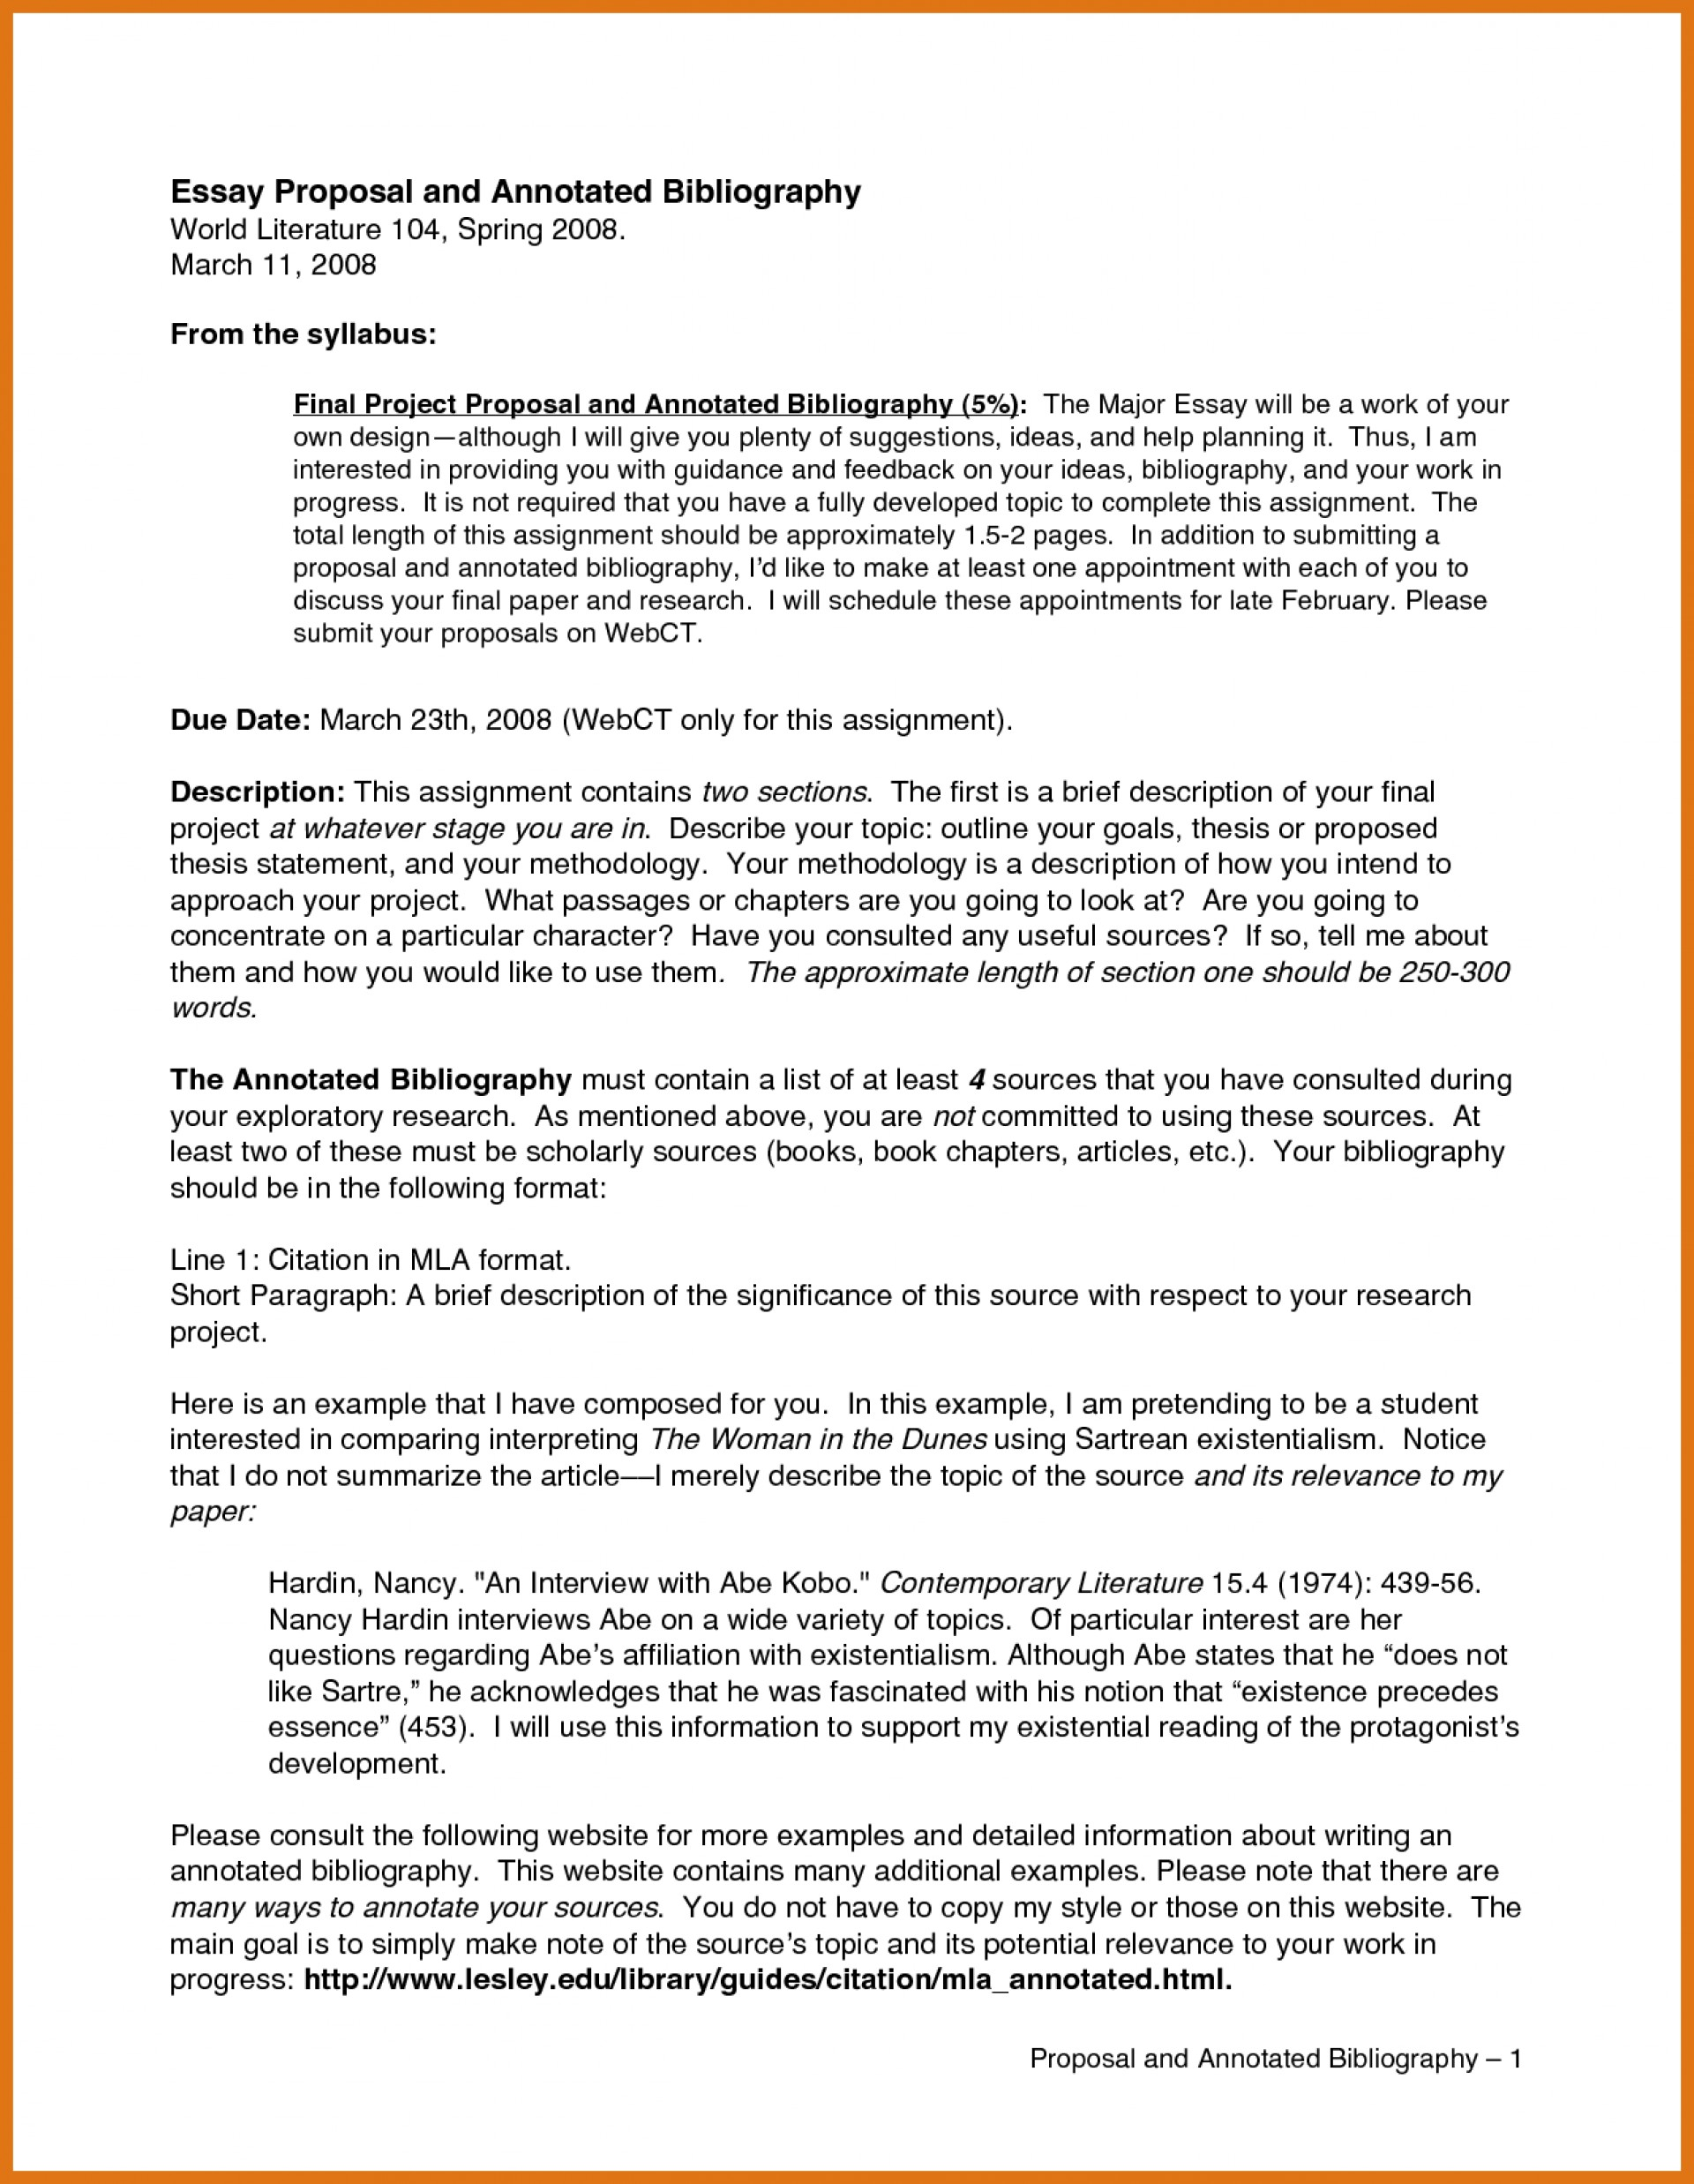 025 Essay Example How To Cite Articles In Bunch Ideas Of Chicago Style Essays Citation Sources Mlaormat Excellent Bibliography Sampleor Research Paper Singular References Apa Article Name A Newspaper Your 1920